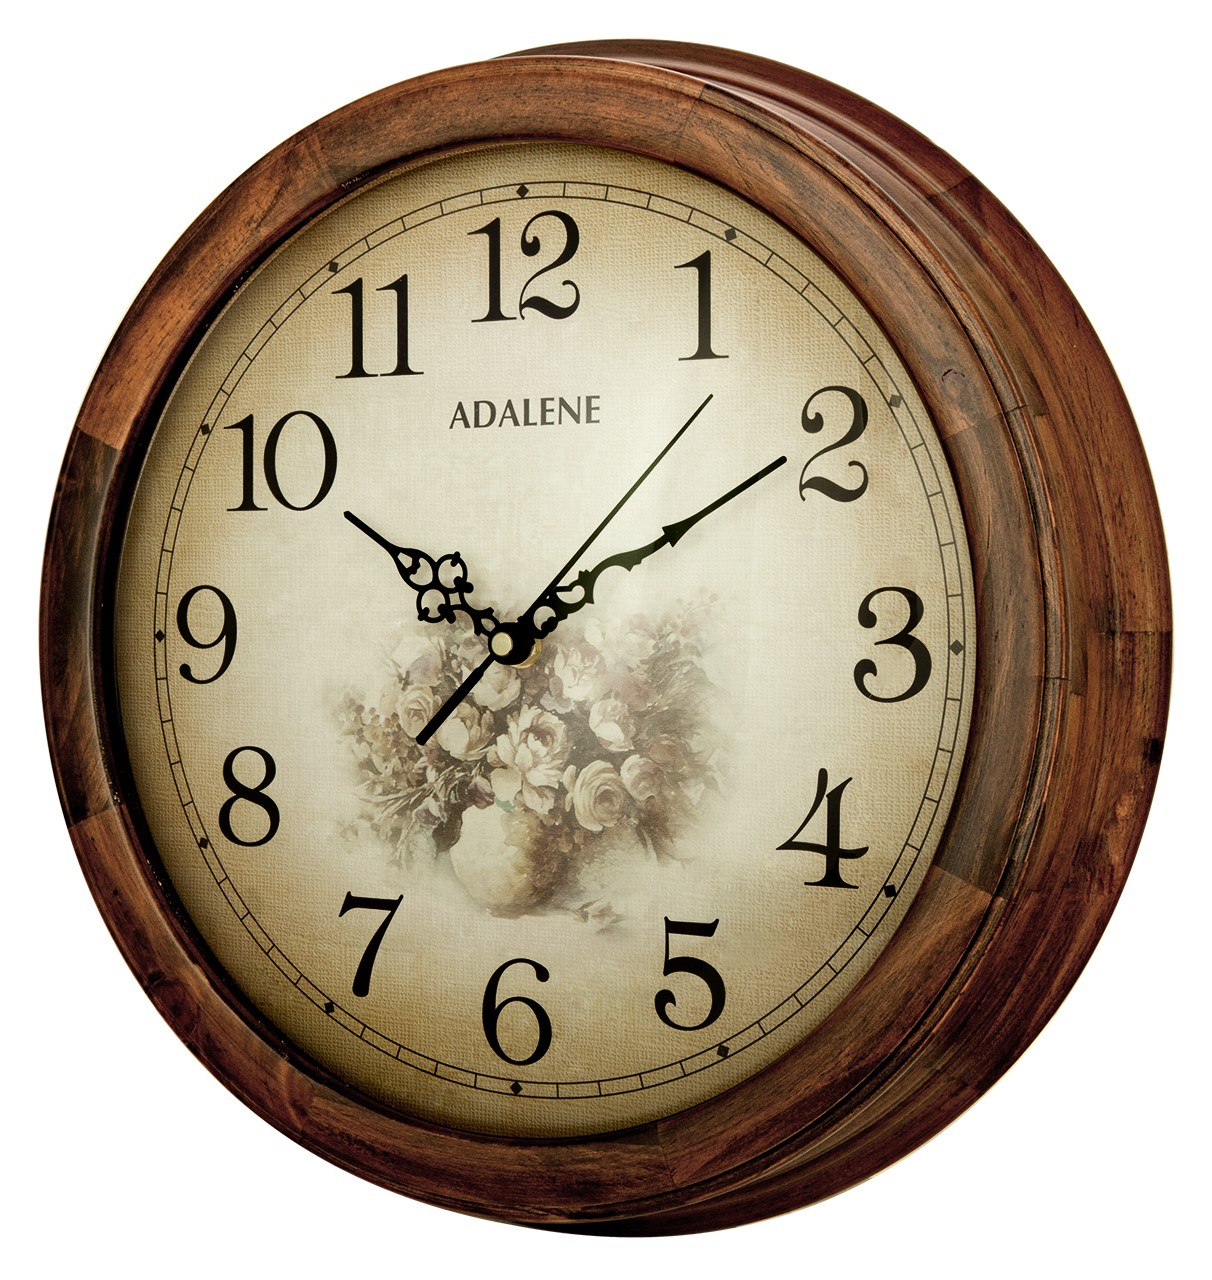 Living Room Clocks Part - 48: Adalene 14 Inch Wall Clock Large Decorative Living Room Clock U2013 Quiet  Battery Operated Quartz Analog Silent Wood Wall Clock U2013 Round Sepia Flower  Dial With ...